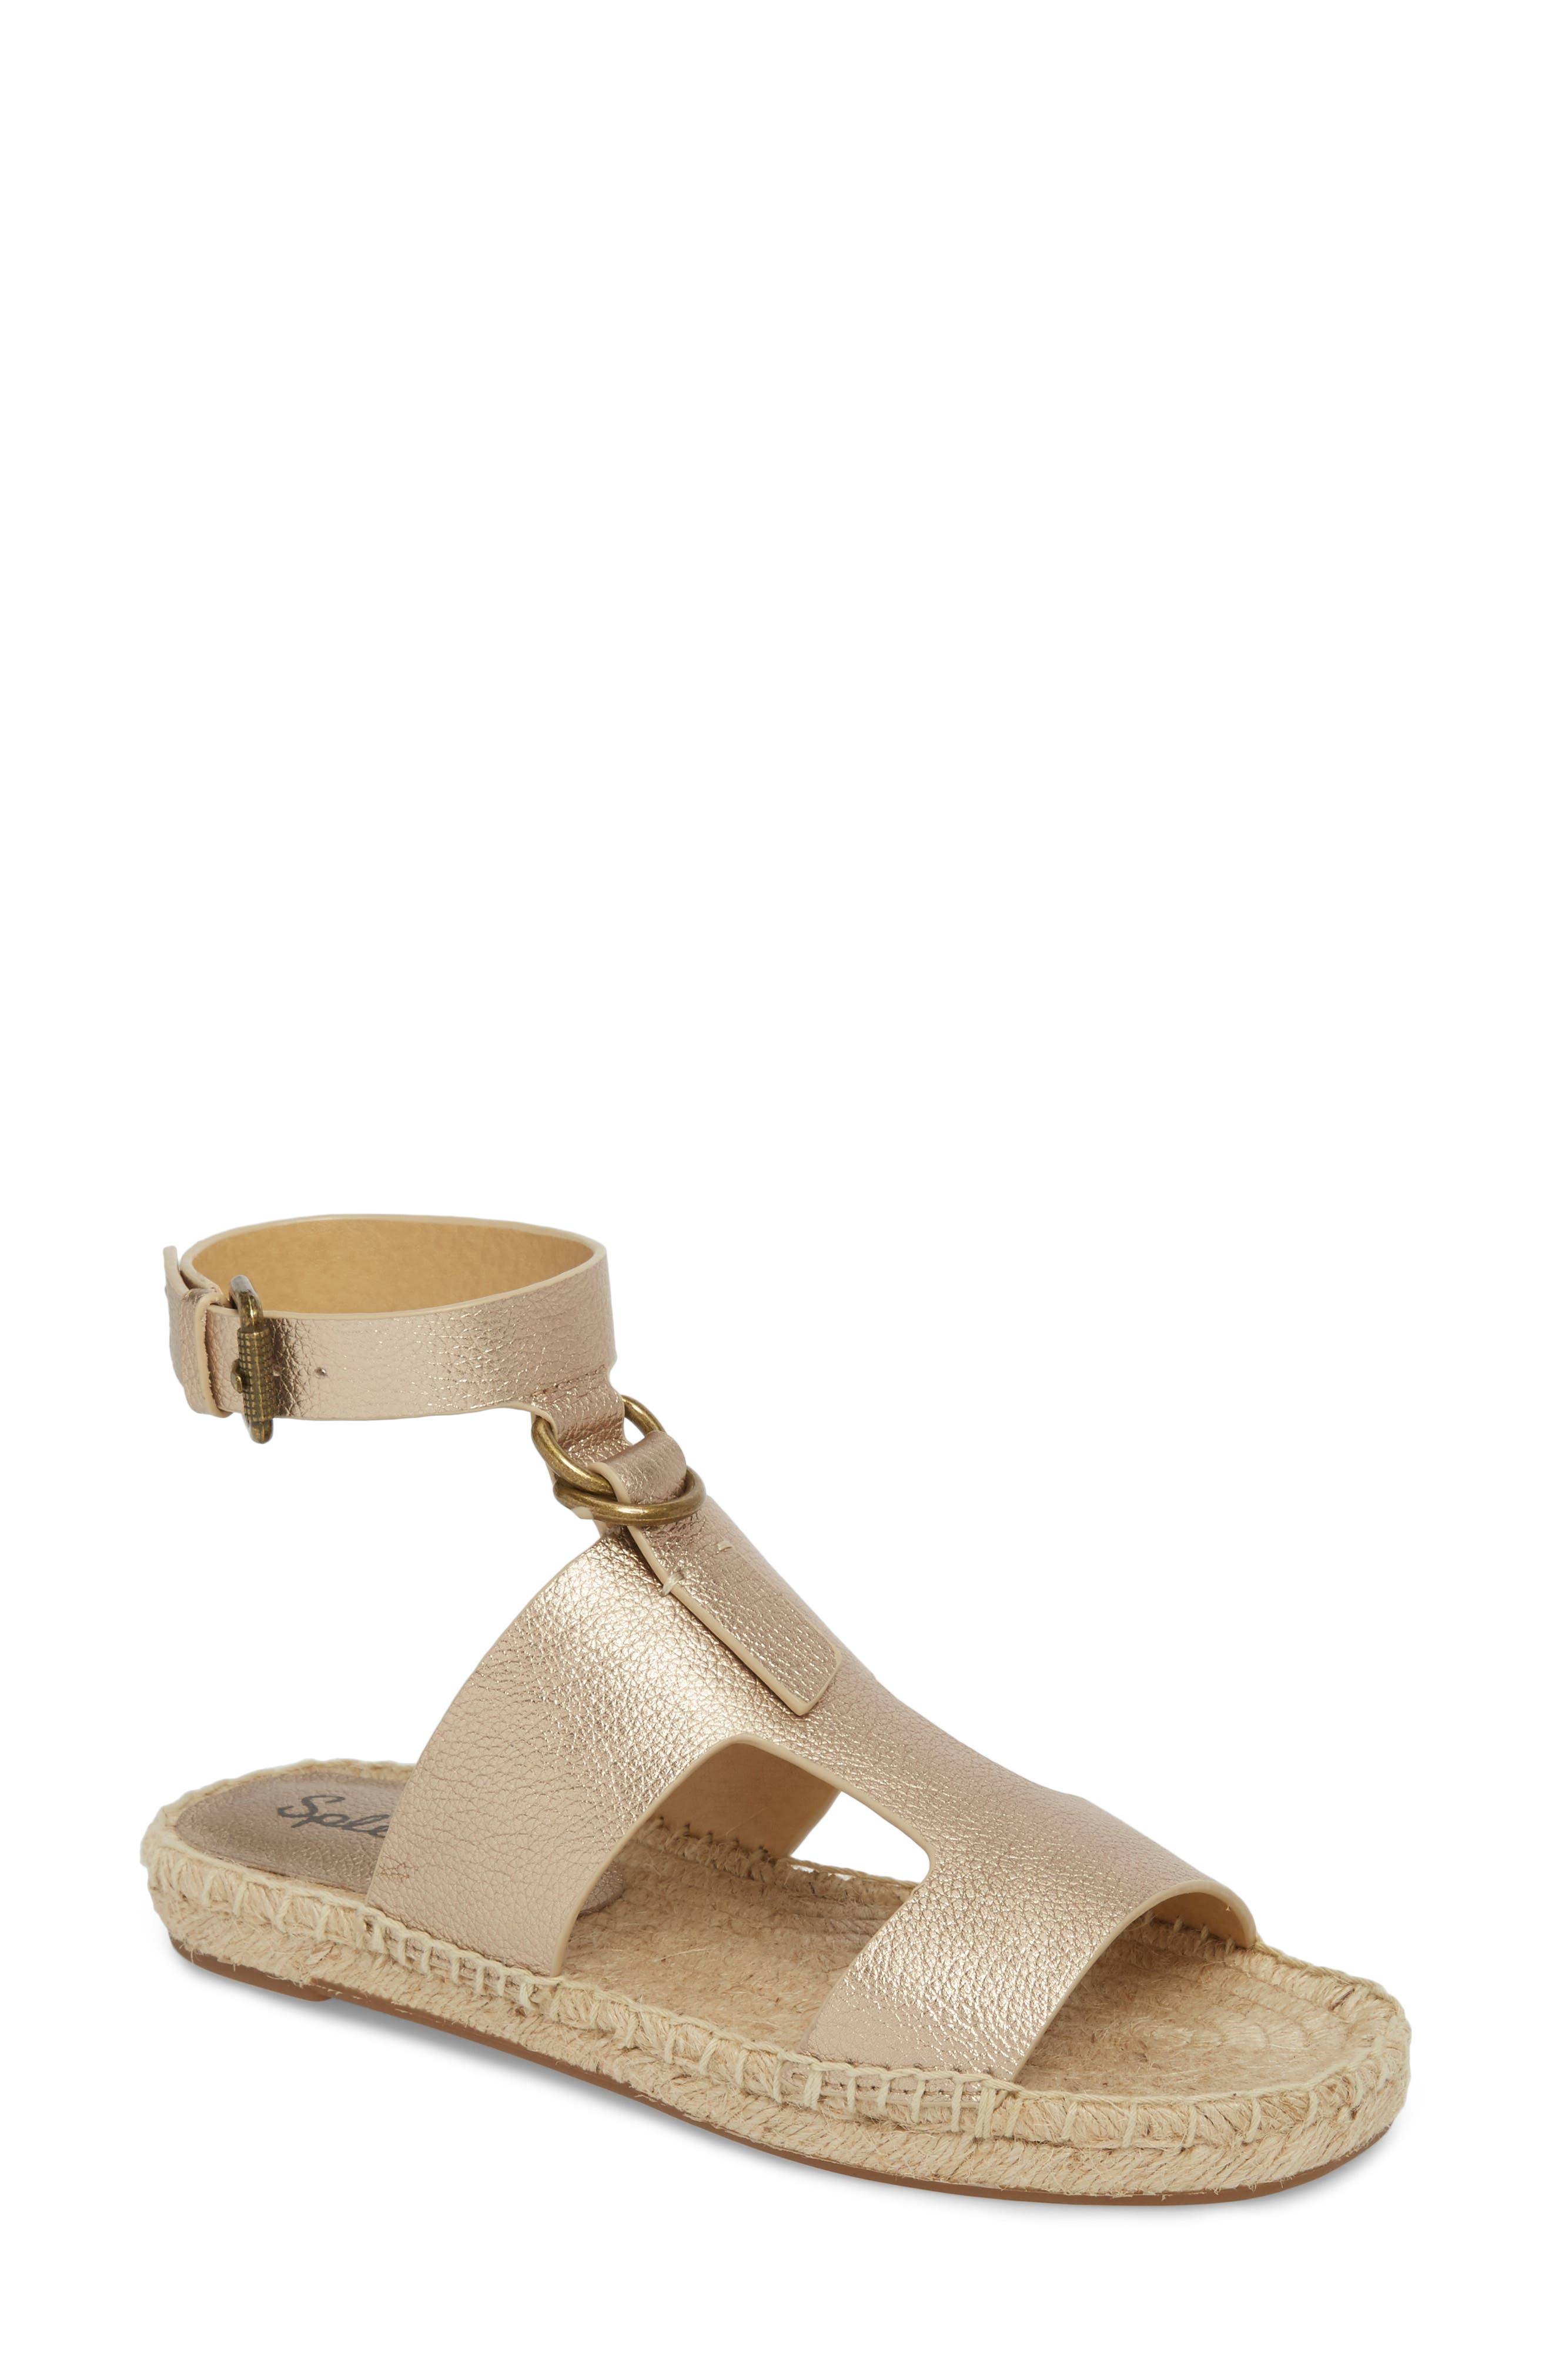 Farley Espadrille Sandal,                             Main thumbnail 1, color,                             Champagne Leather